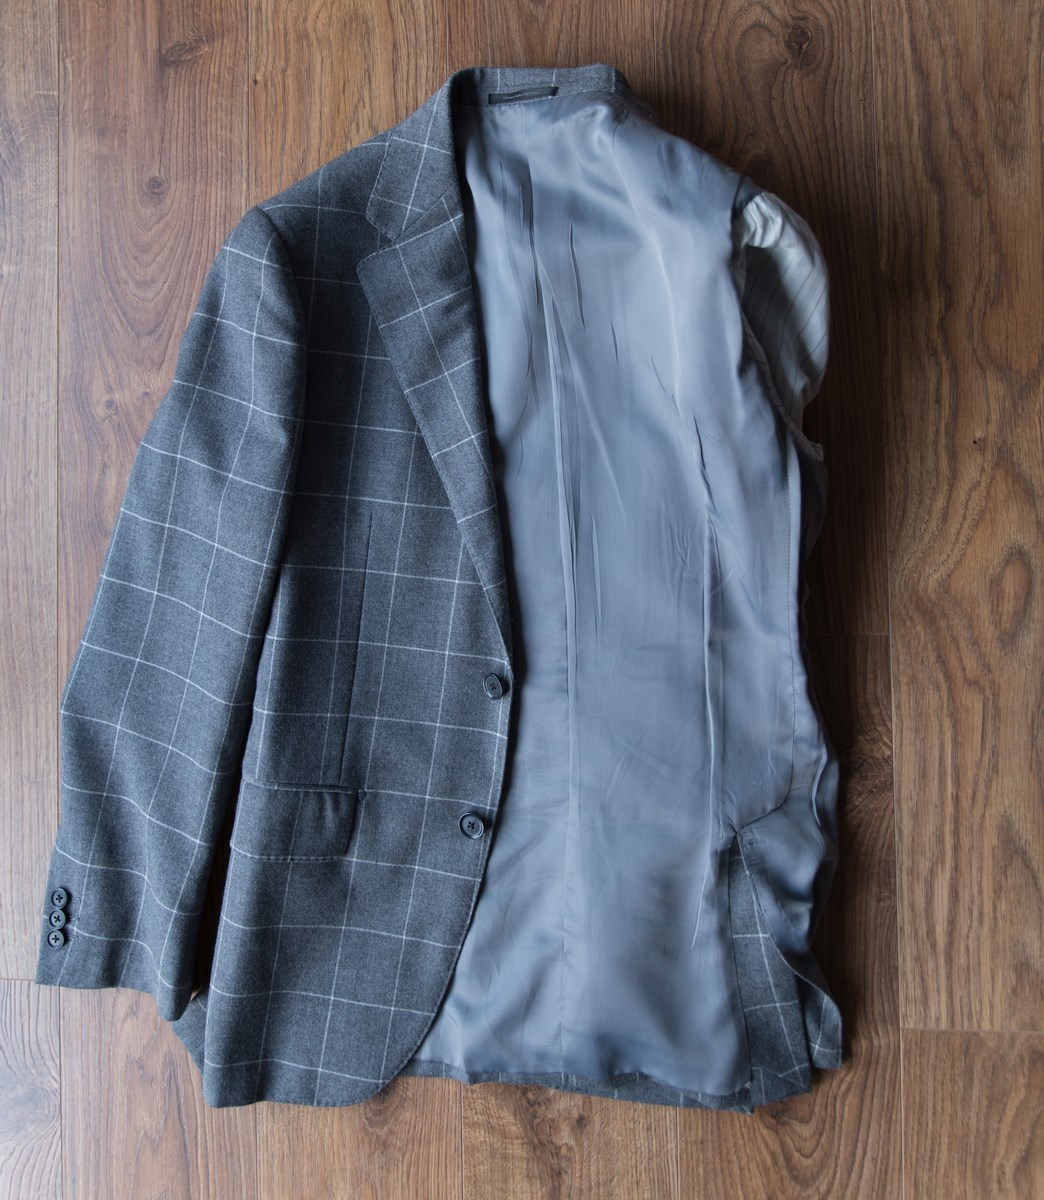 Folding a coat in a suitcase 2